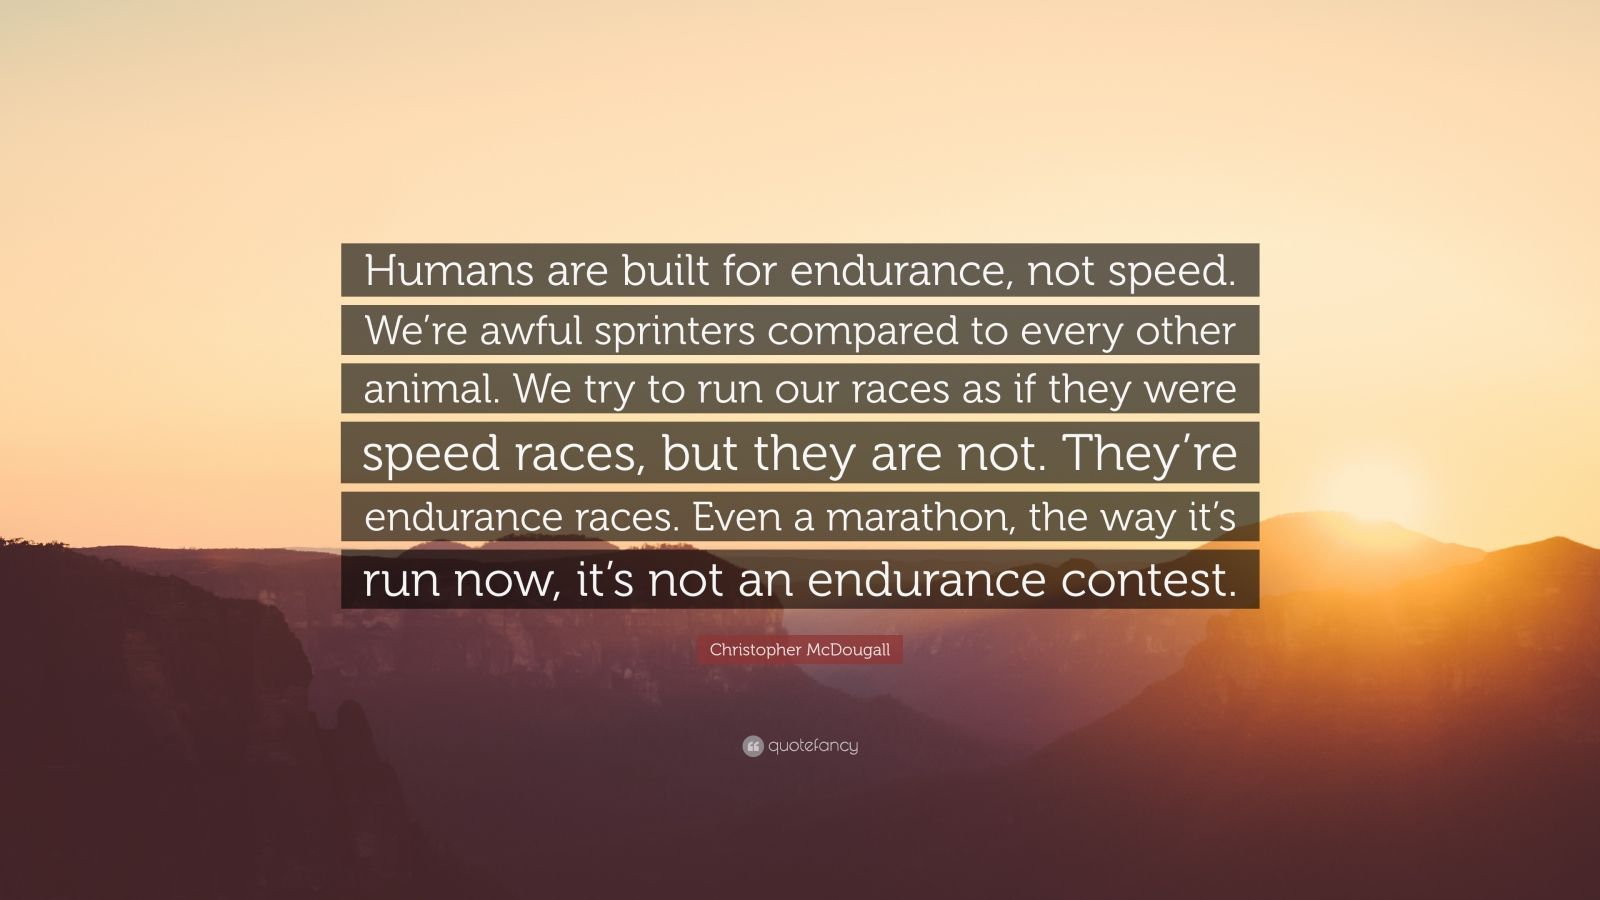 "Christopher McDougall Quote: ""Humans are built for endurance, not speed. We're awful sprinters compared to every other animal. We try to run our races as if they were speed races, but they are not. They're endurance races. Even a marathon, the way it's run now, it's not an endurance contest."""